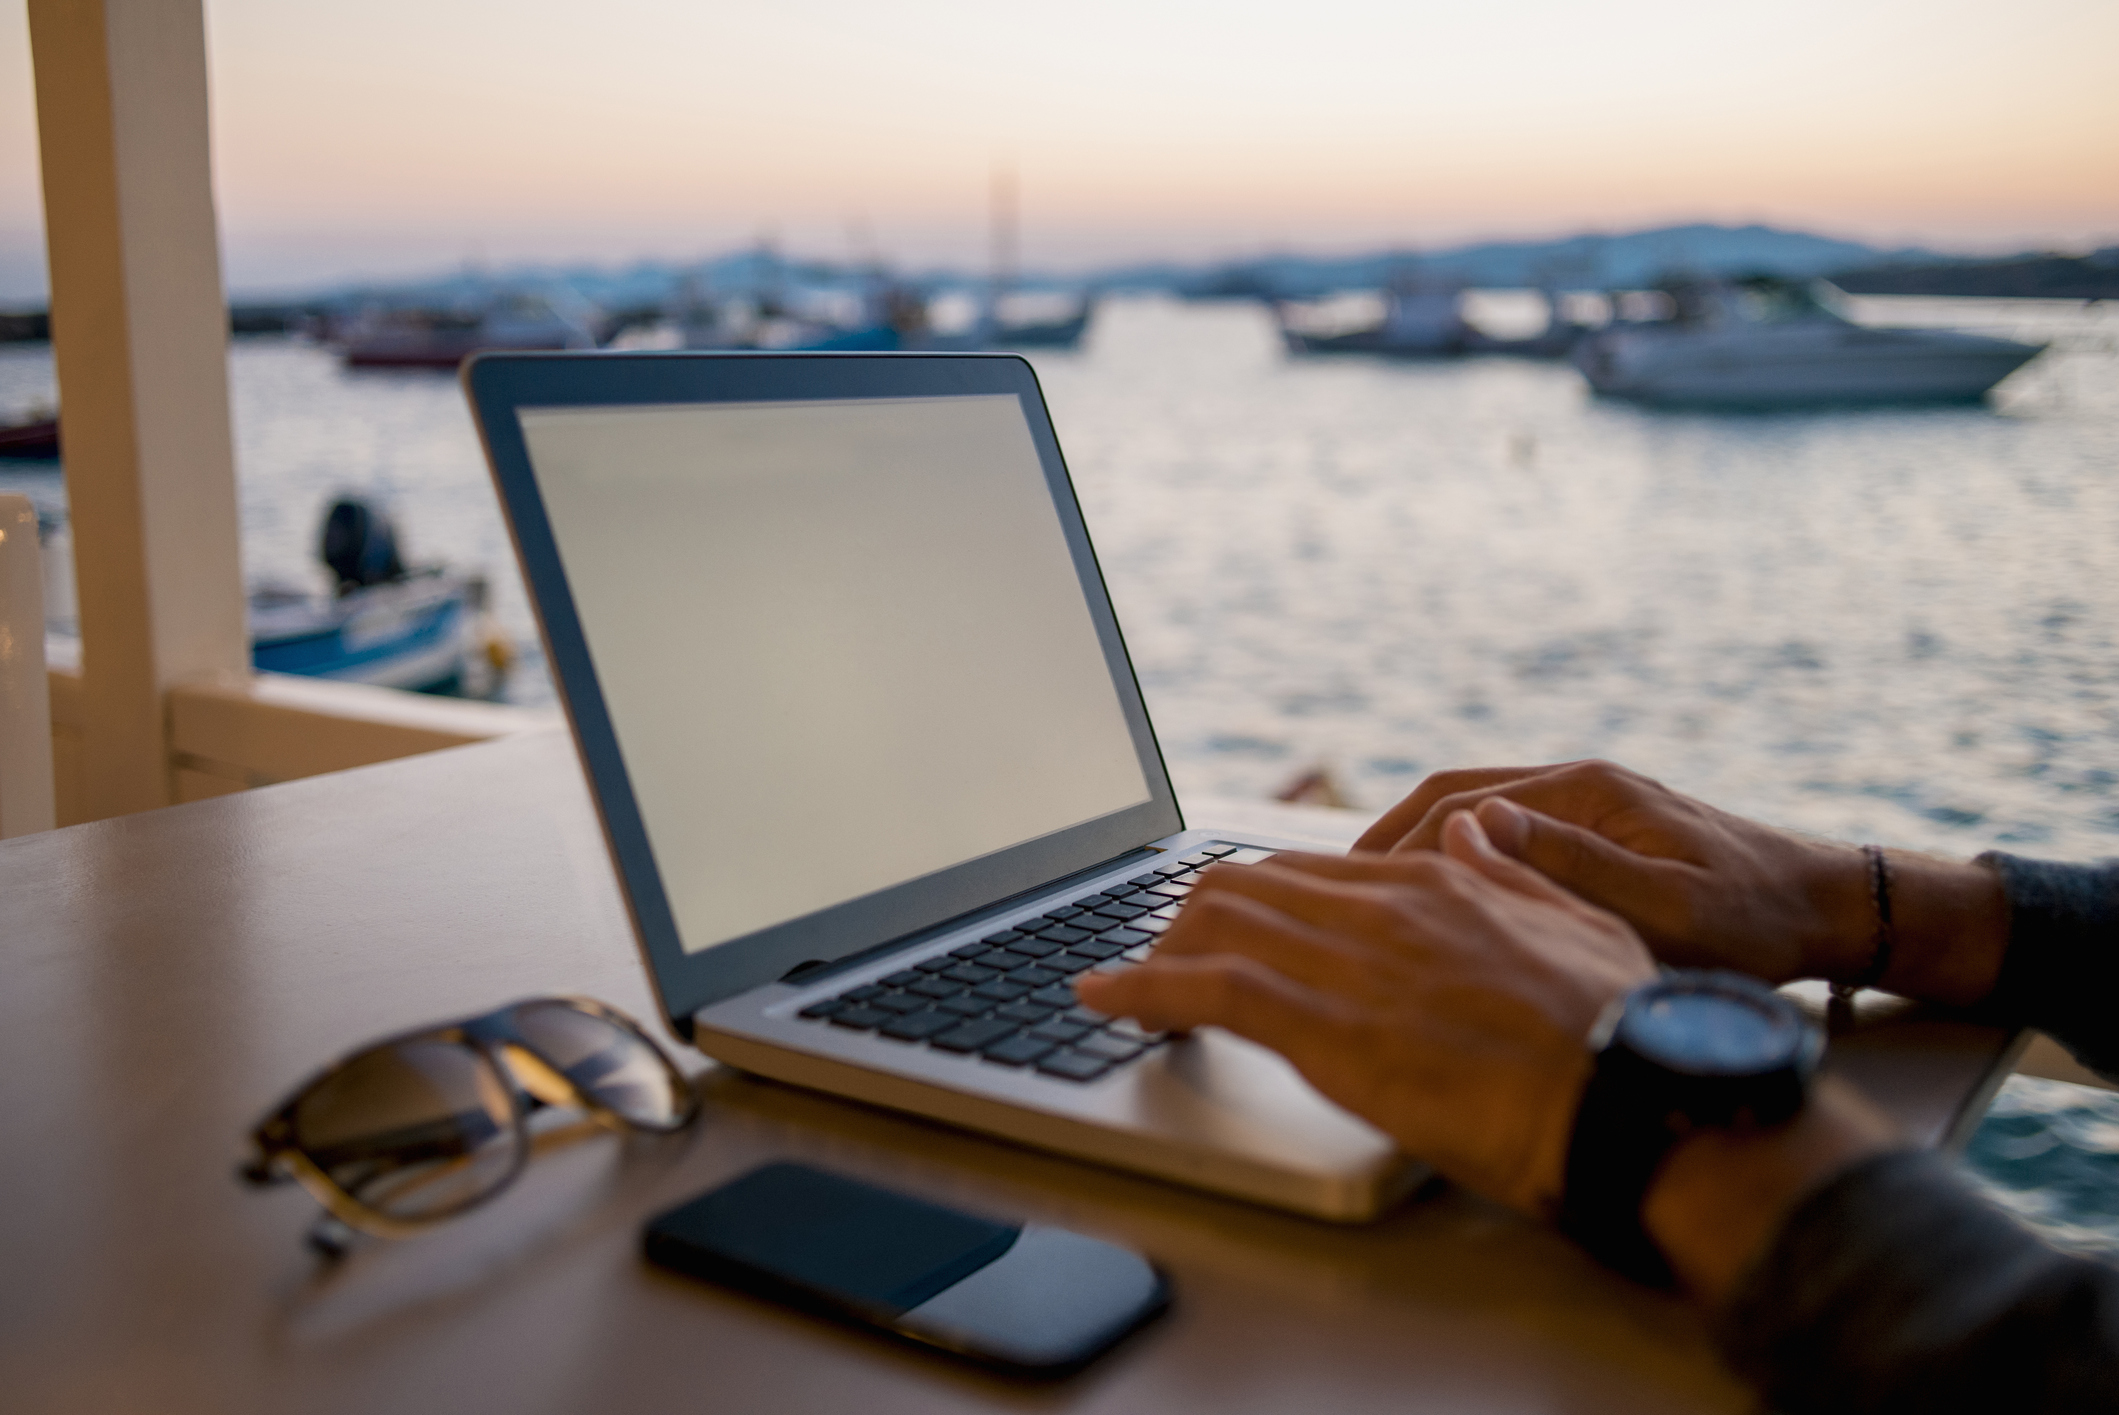 close up photo of man hands working on laptop,in the background is the sea and boats